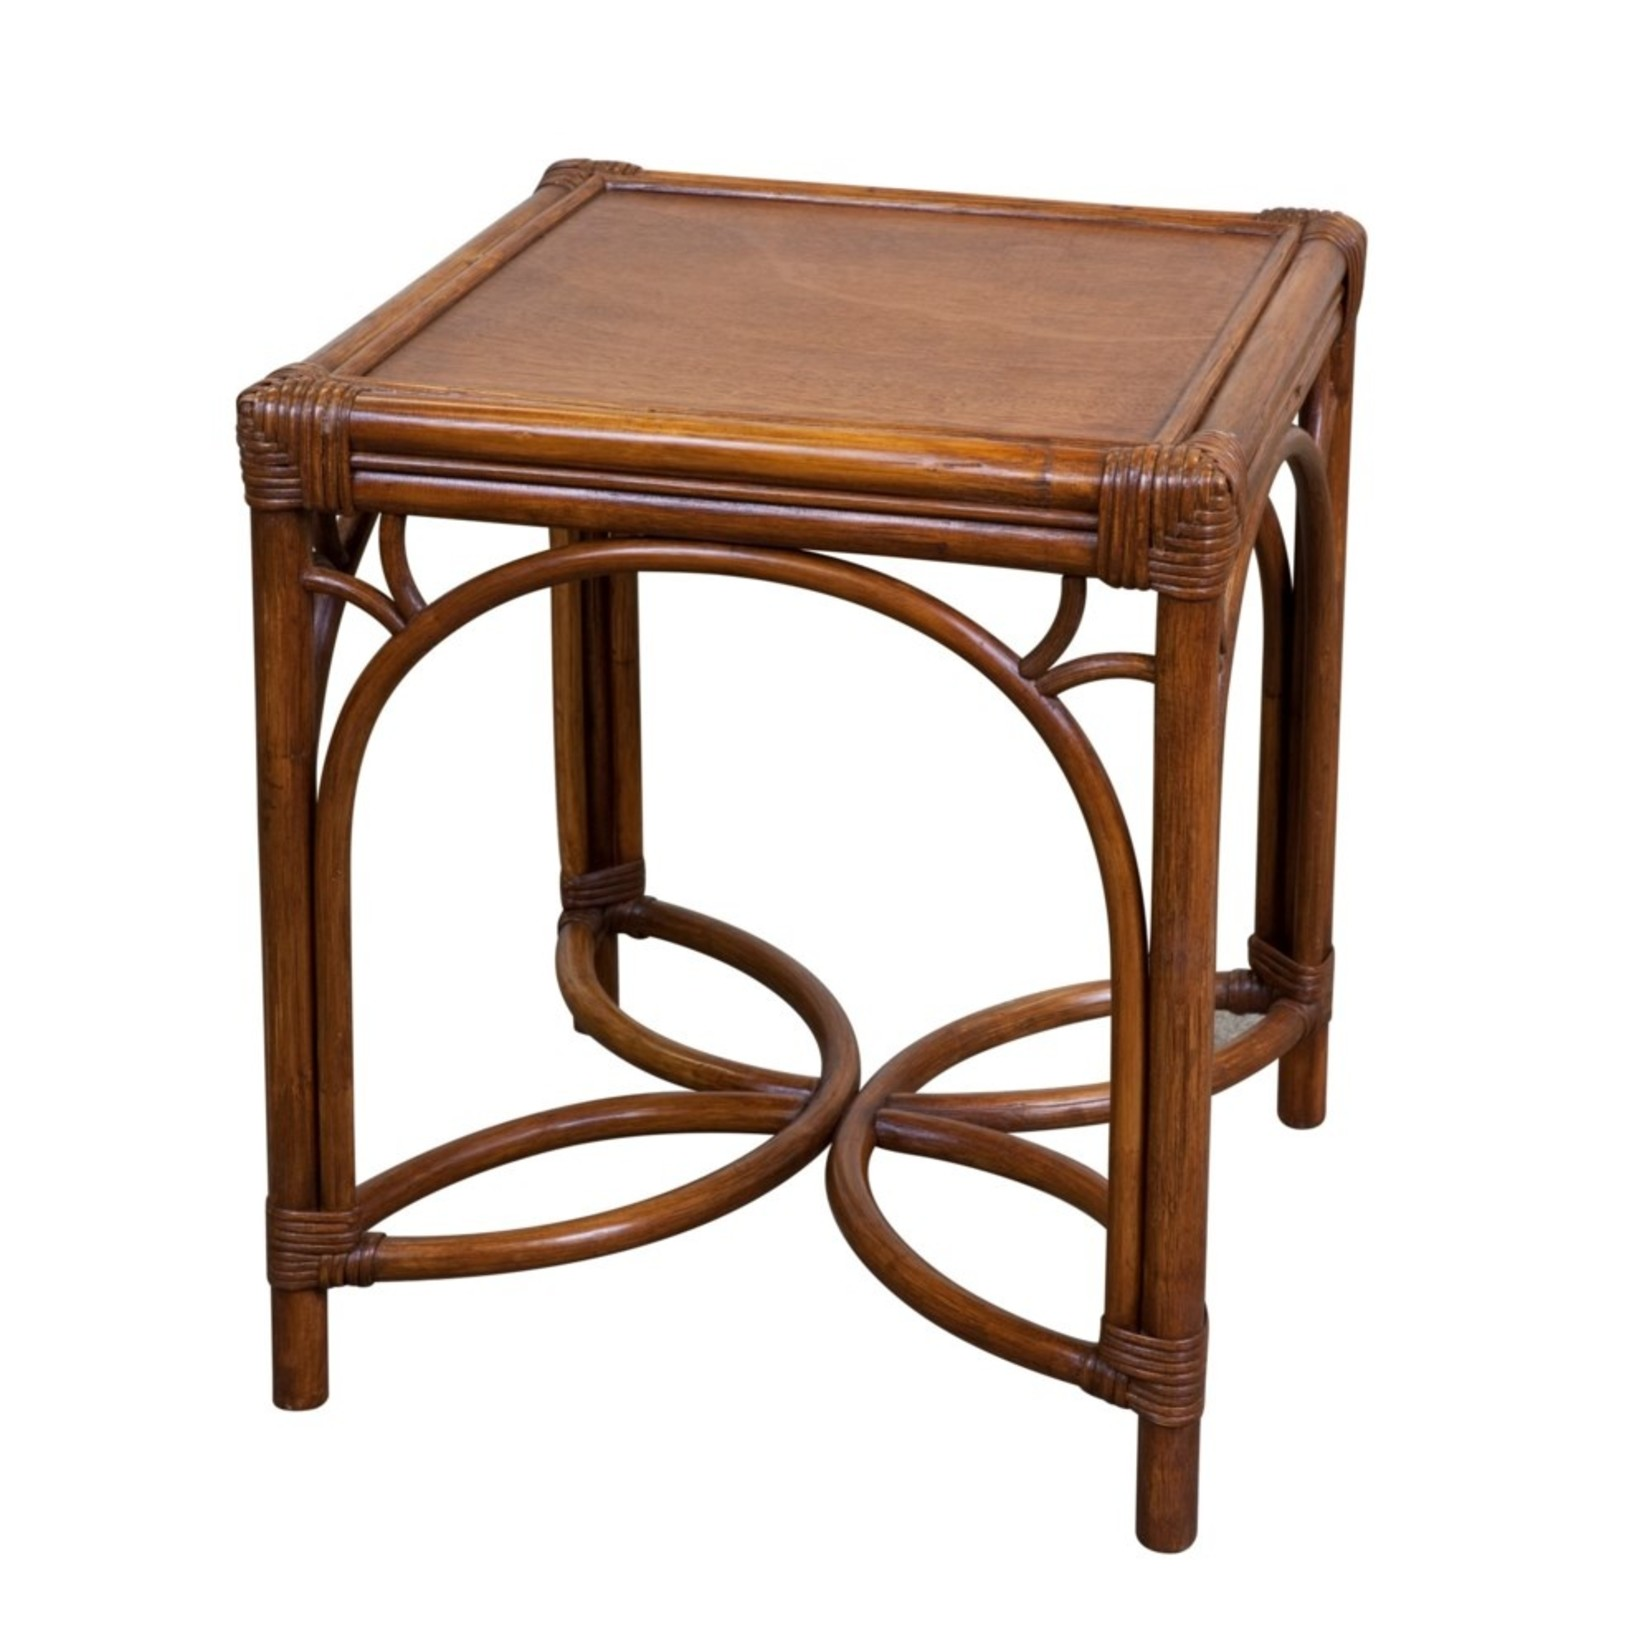 Mainly Baskets Gracie Side Table - Chestnut